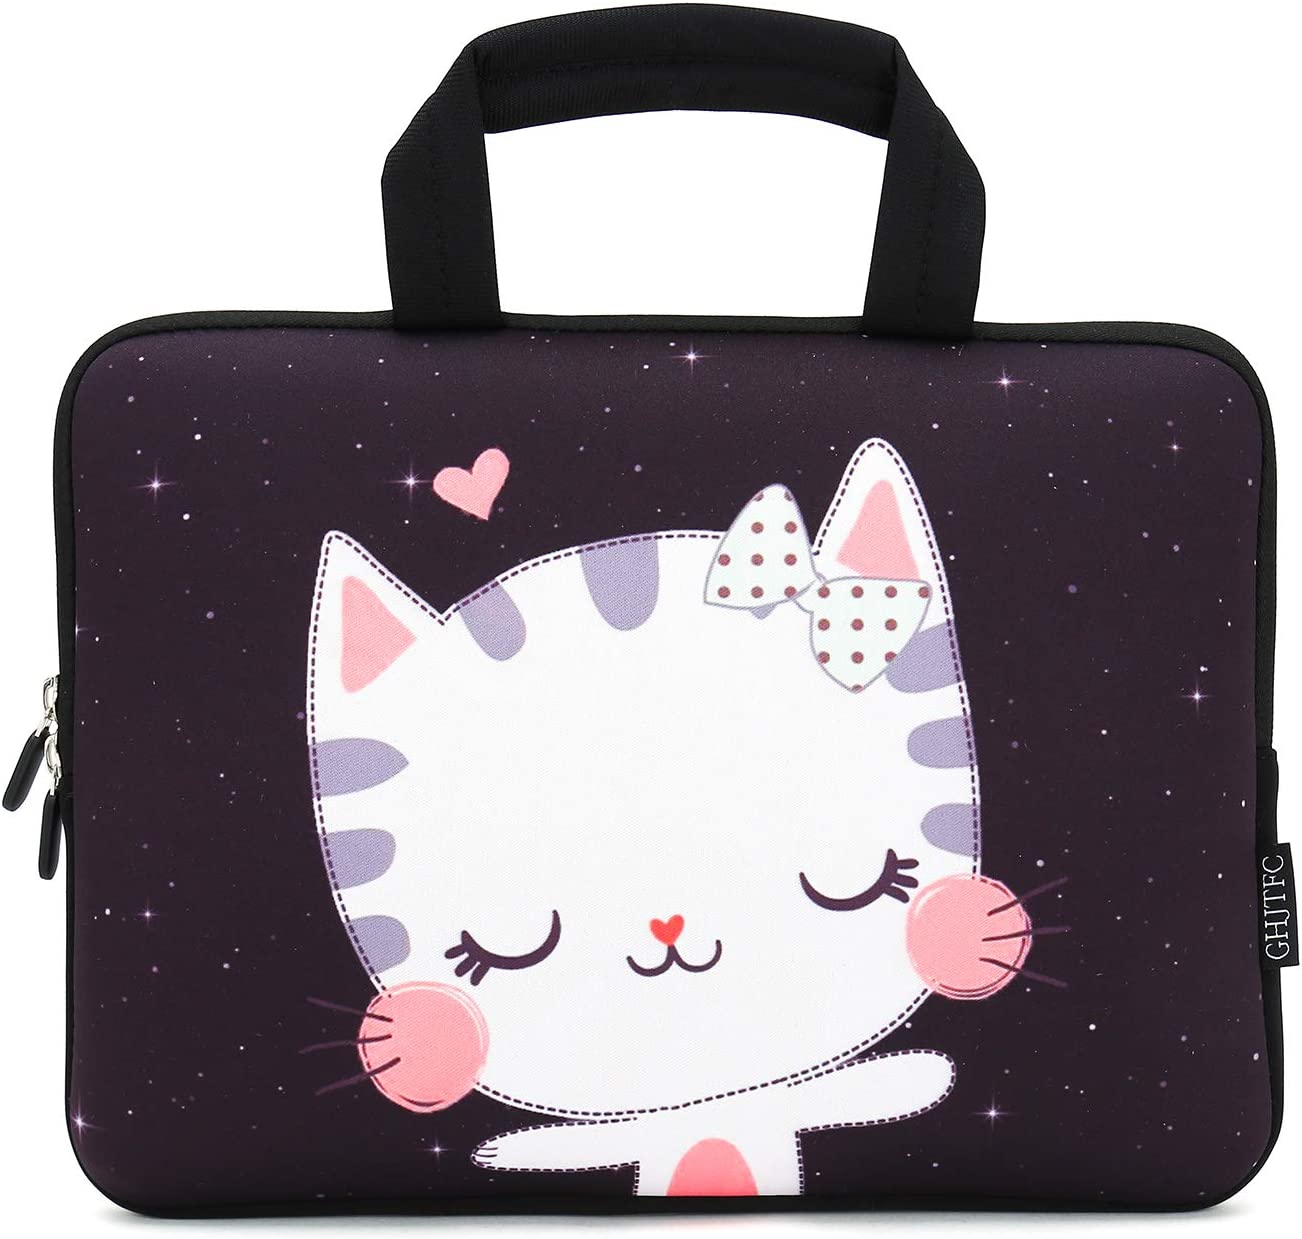 """12 Inch Laptop Sleeve Carrying Bag Protective Case Neoprene Sleeve Tote Tablet Cover Notebook Briefcase Bag with Handle for Women Men(Cat,12"""")"""